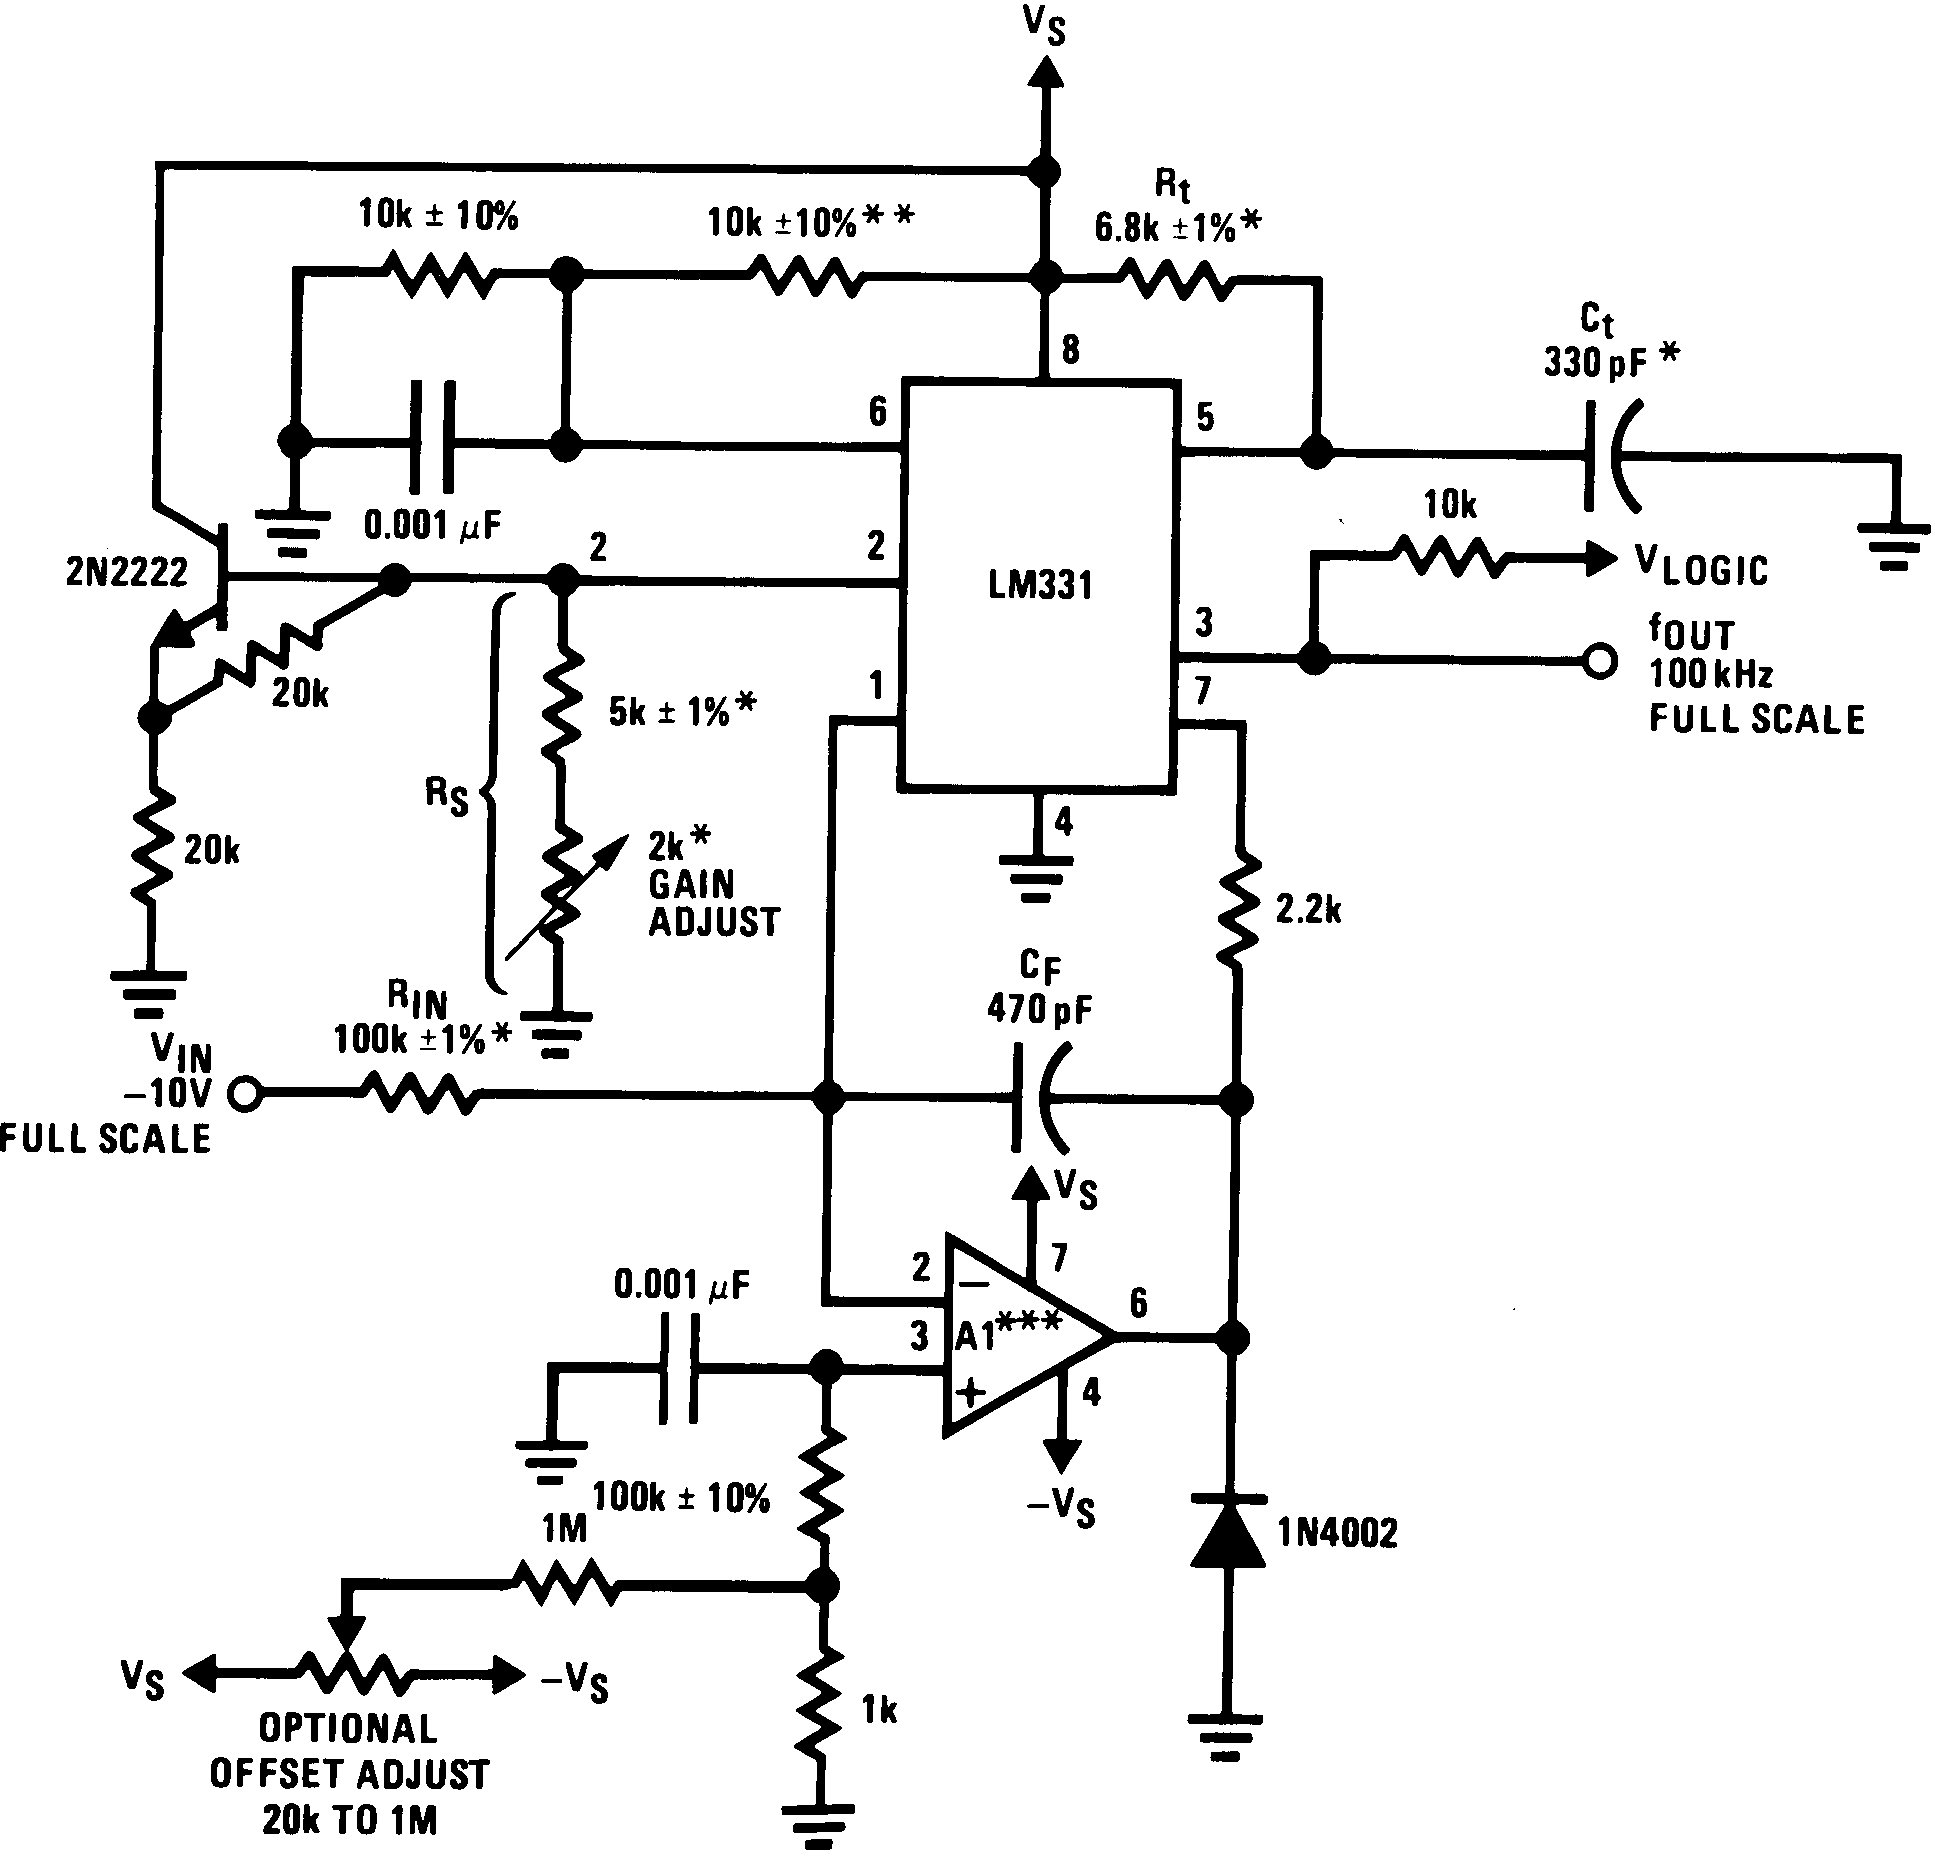 Lm331 Shown To Use Lm324 Voltage Comparator Composed Of A Test Circuit It Lm231 00568006